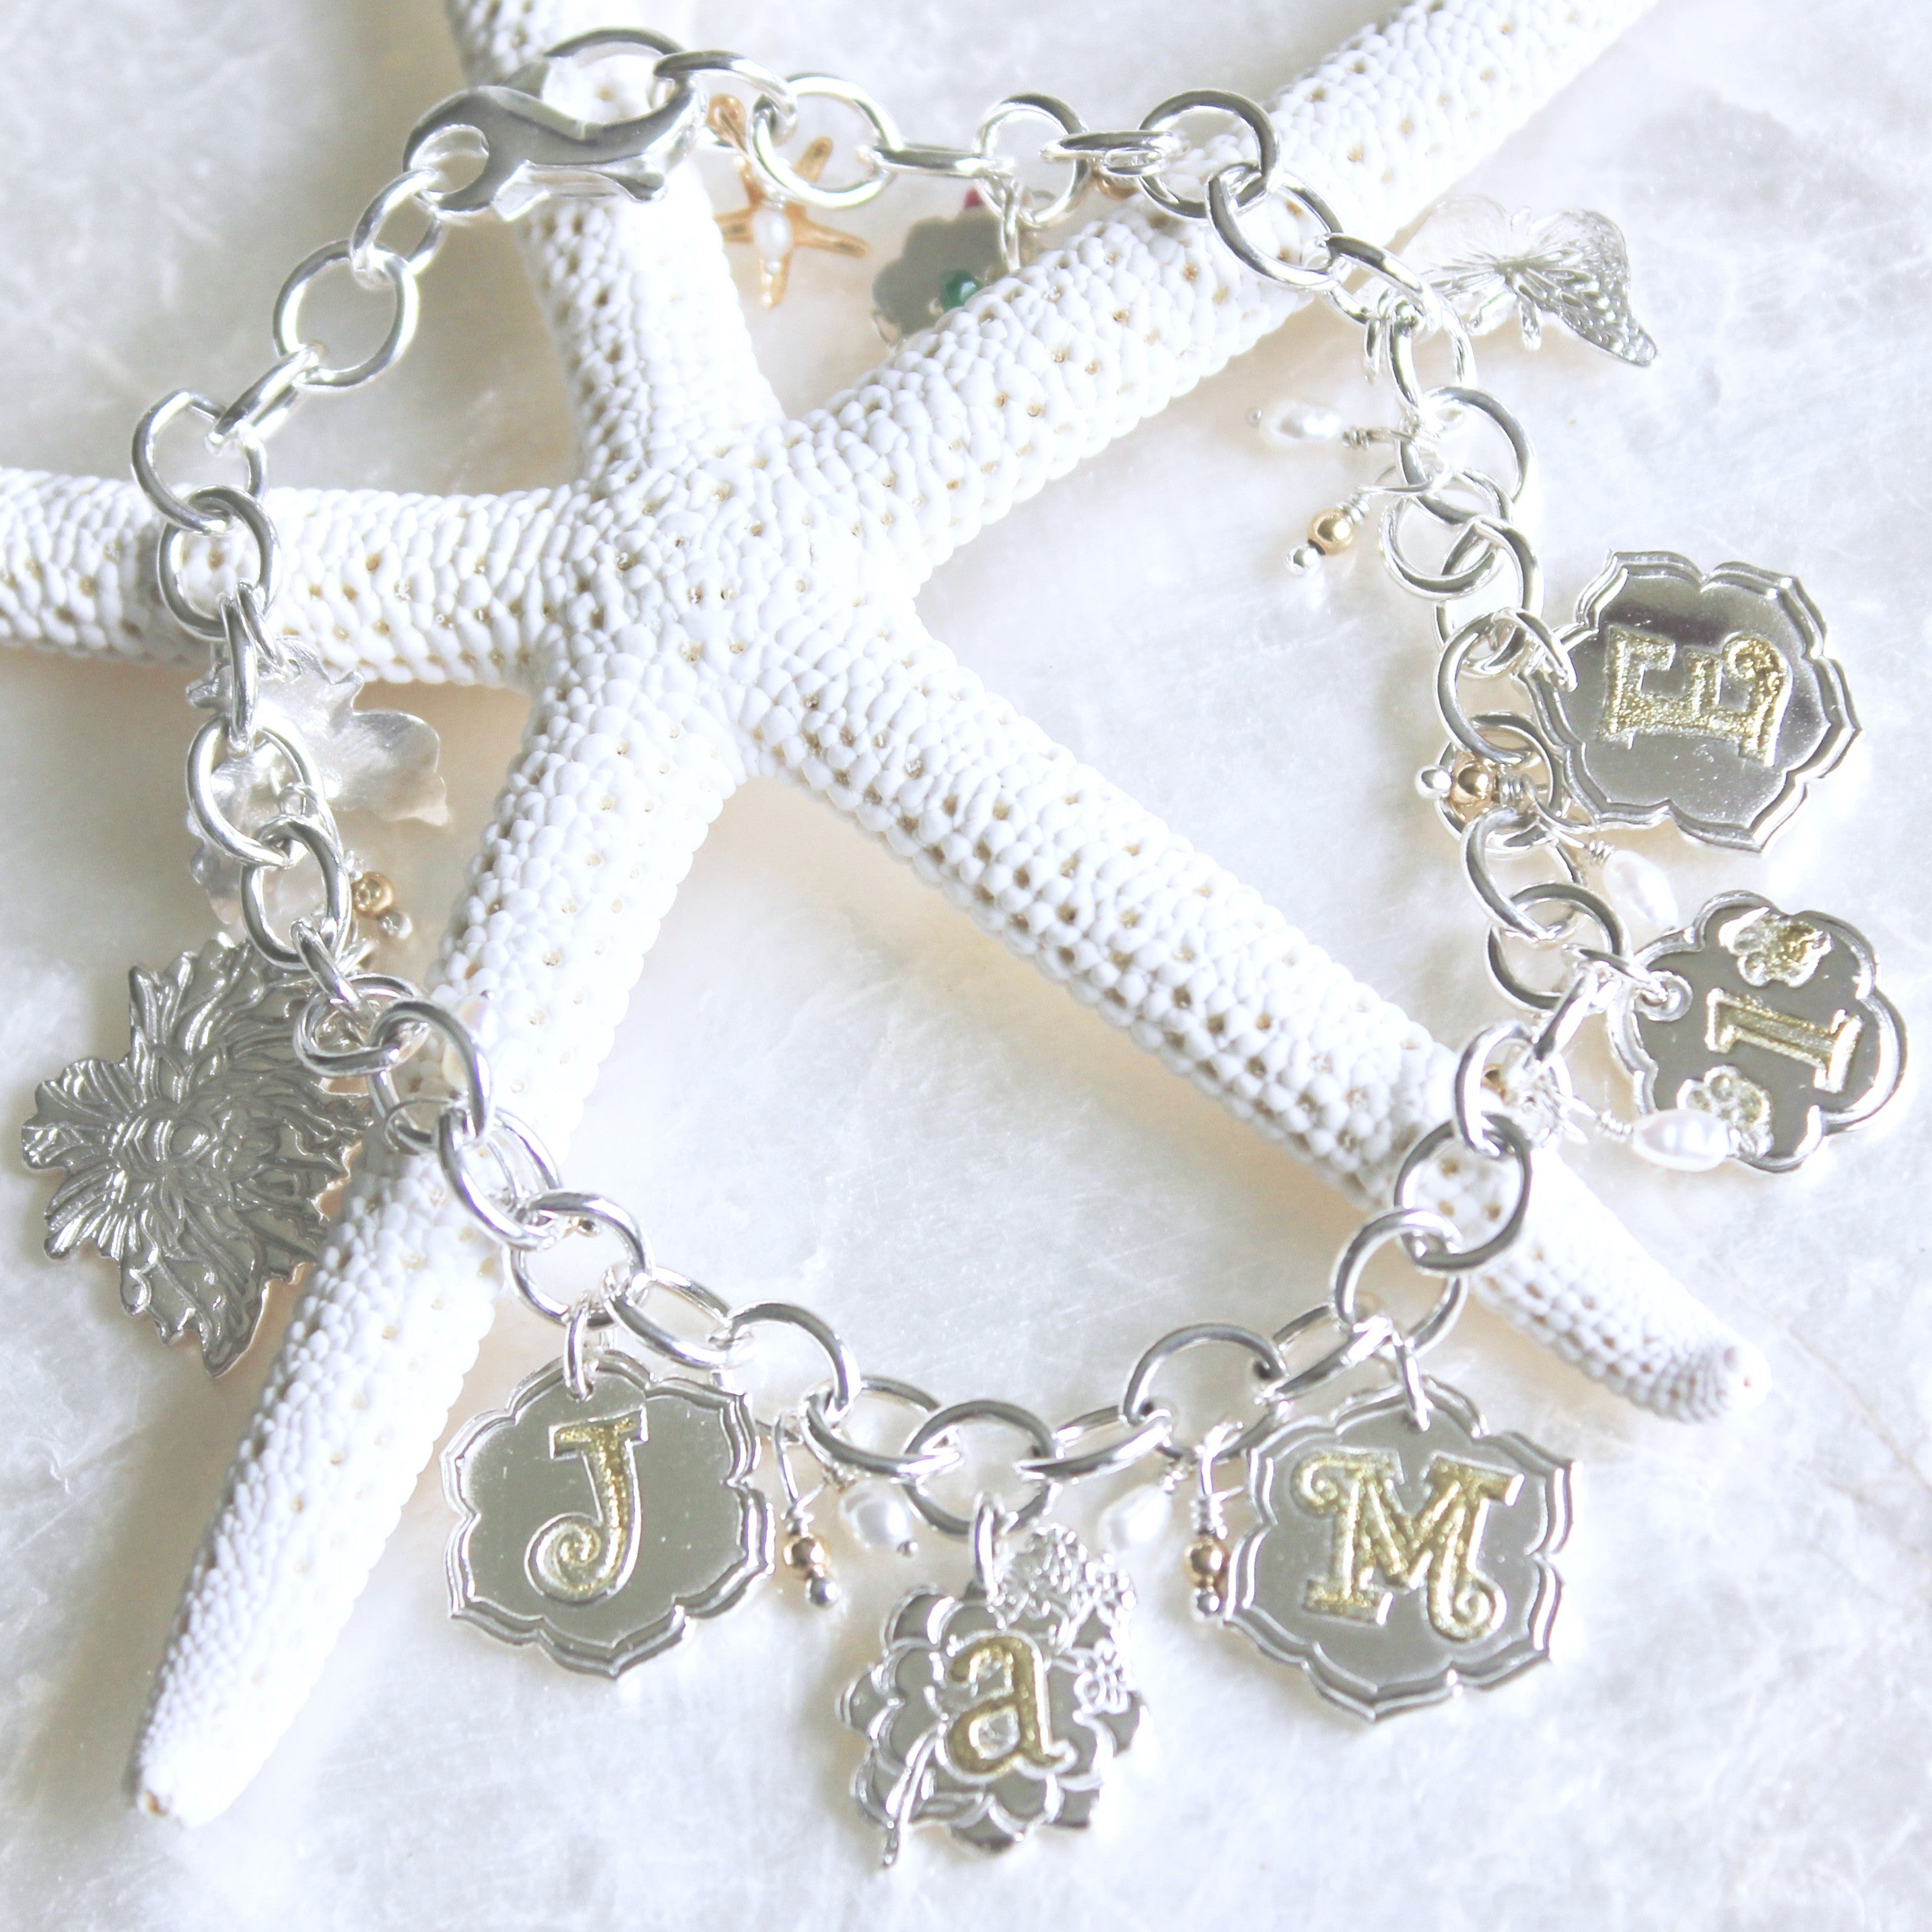 Personalized Baby Name Charm Bracelet In Fine And Sterling Silver